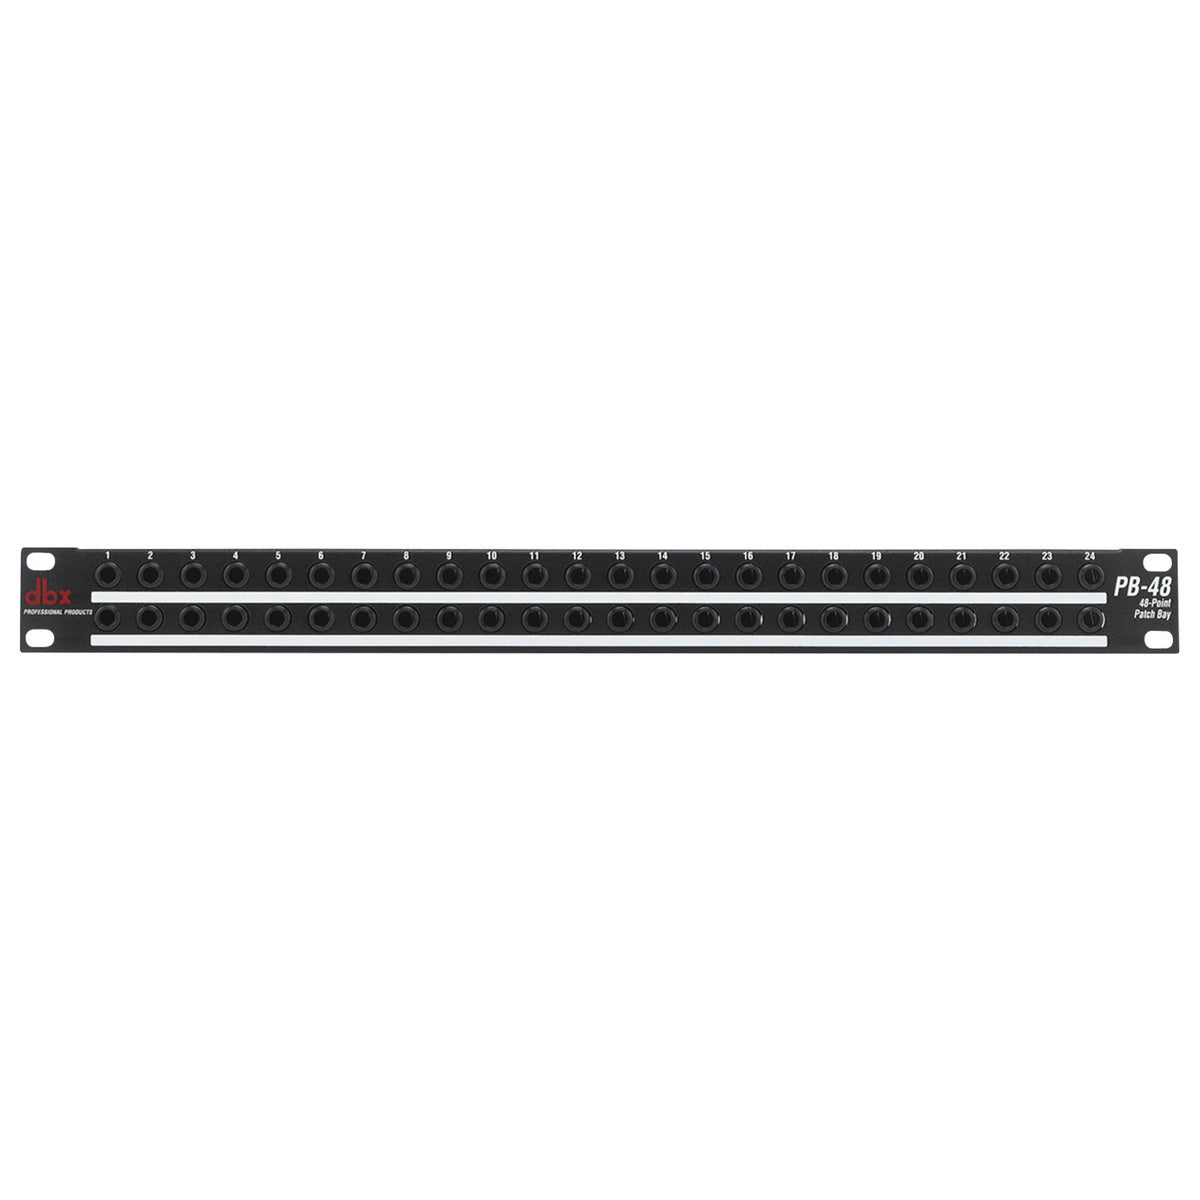 "DBX PB-48 48-Point 1/4"" Patch Bay"